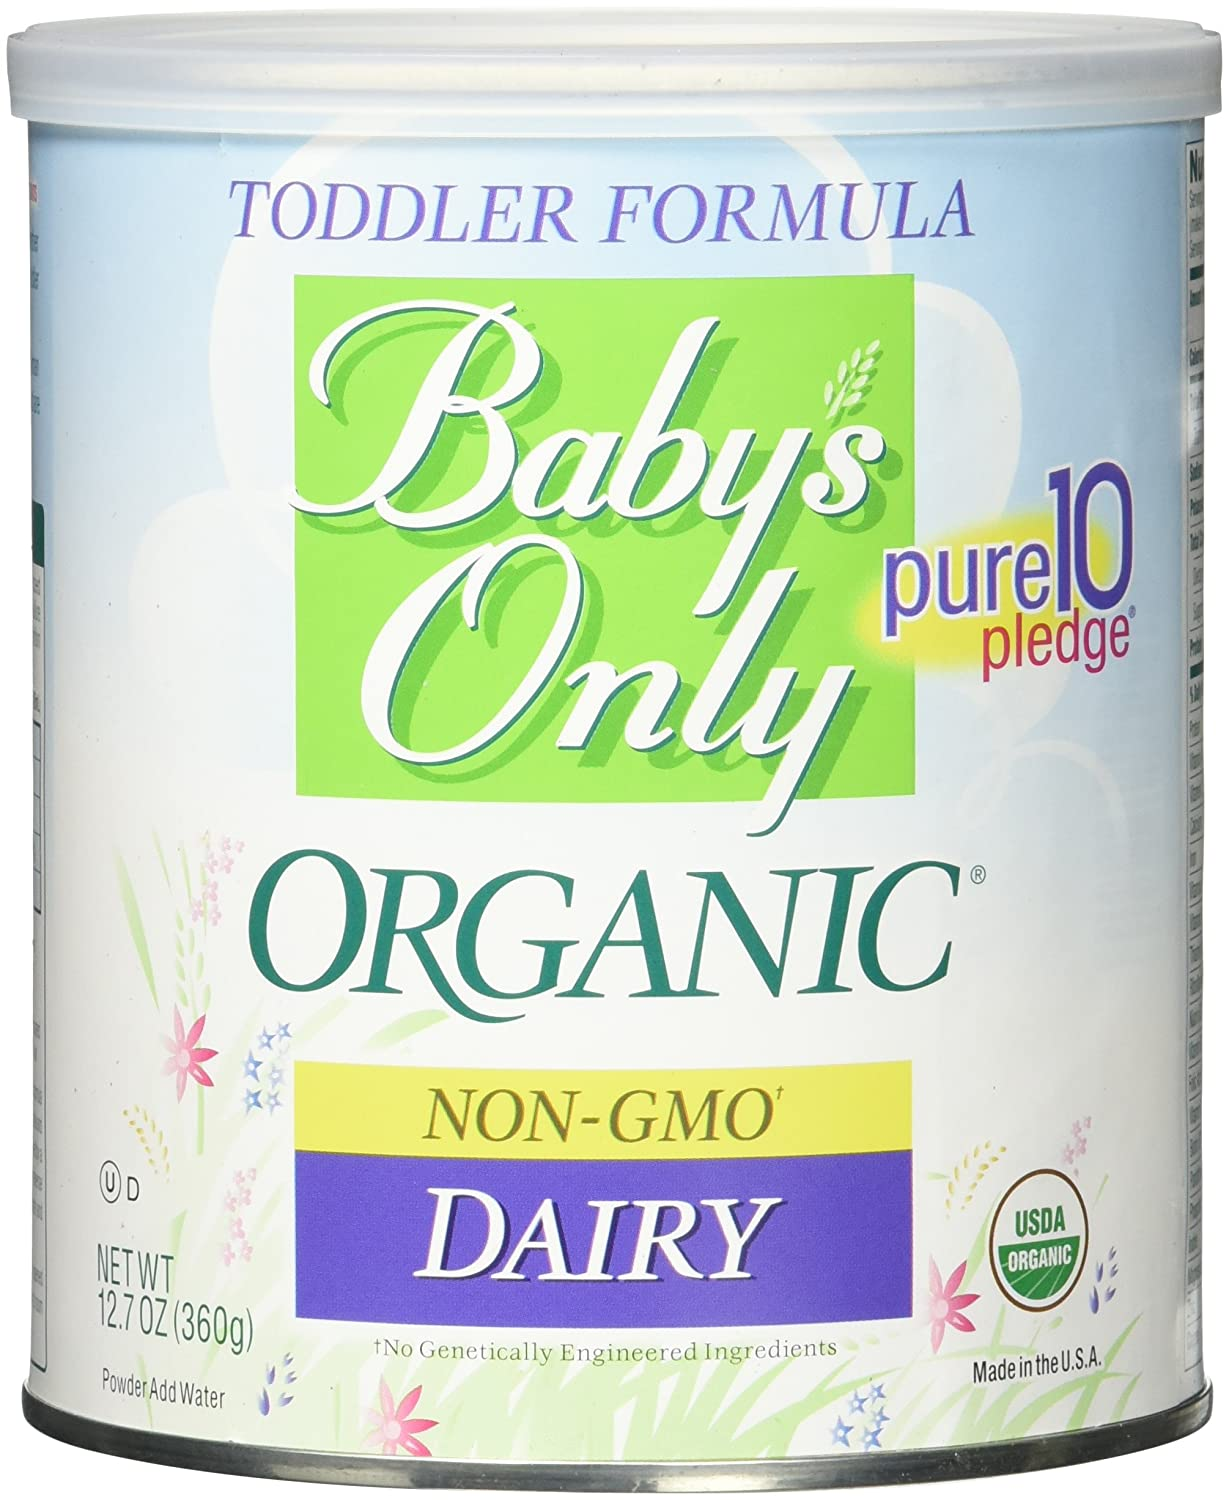 Top 5 Of The Best Organic Formula For Babies In The Market